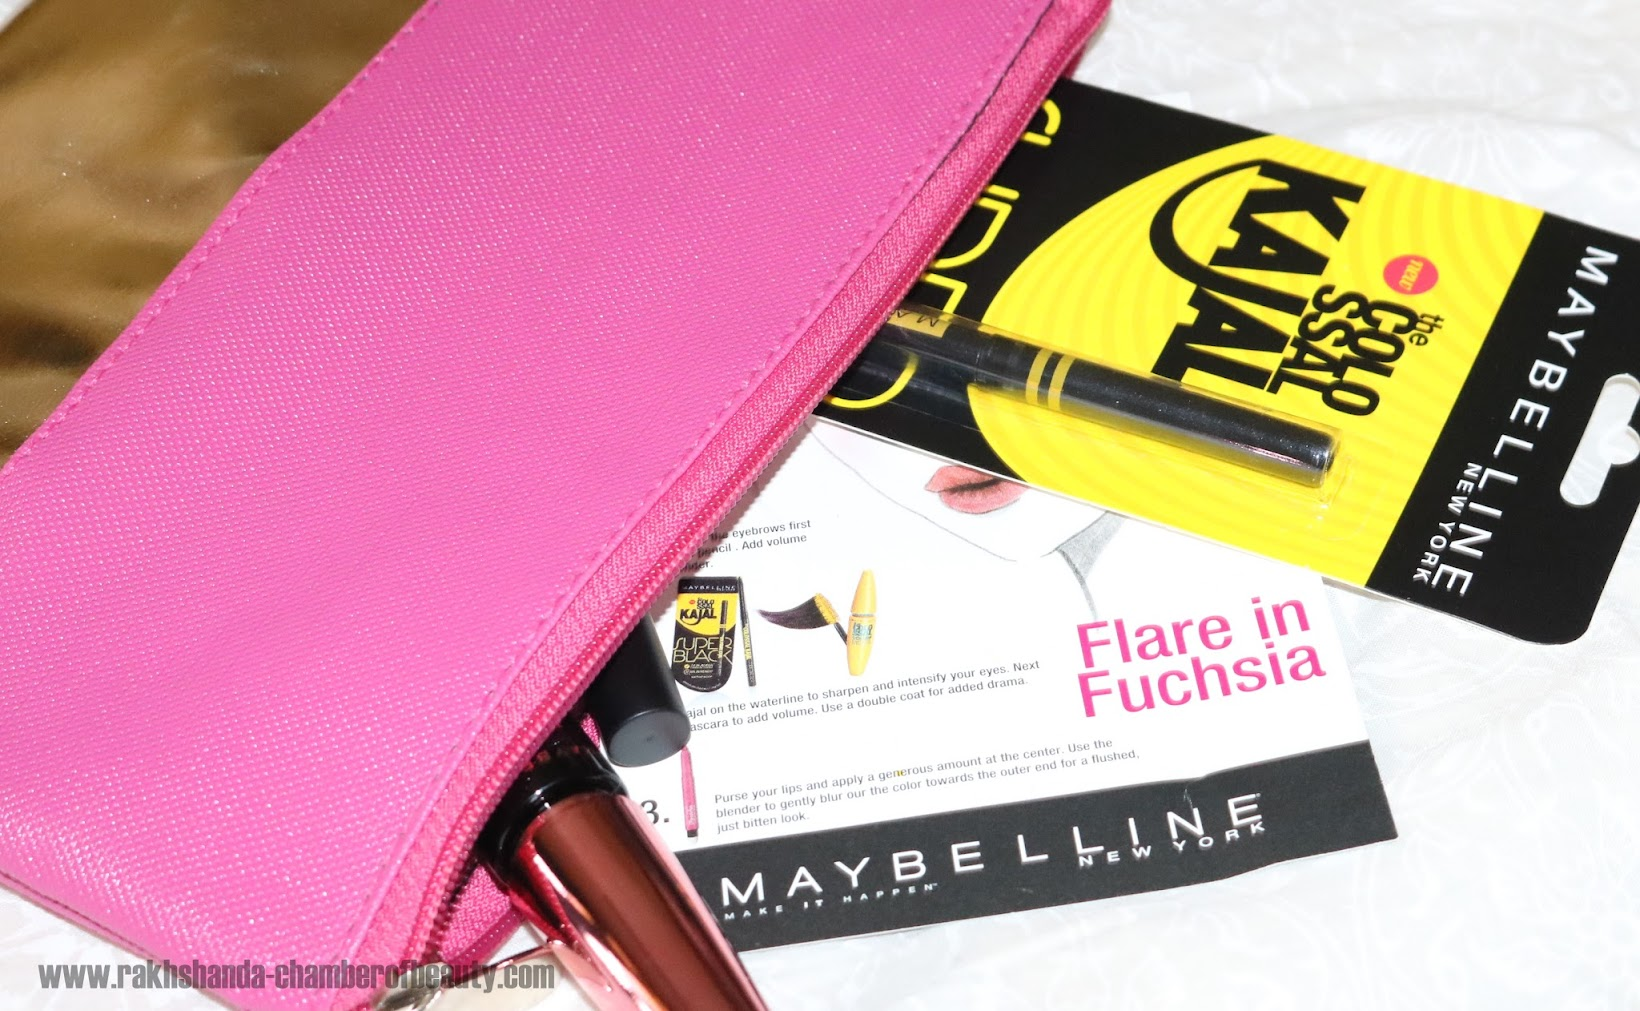 Maybelline New York Fashion Week Make Up Kit - Flare in Fuschia Review, Photos & Price in India